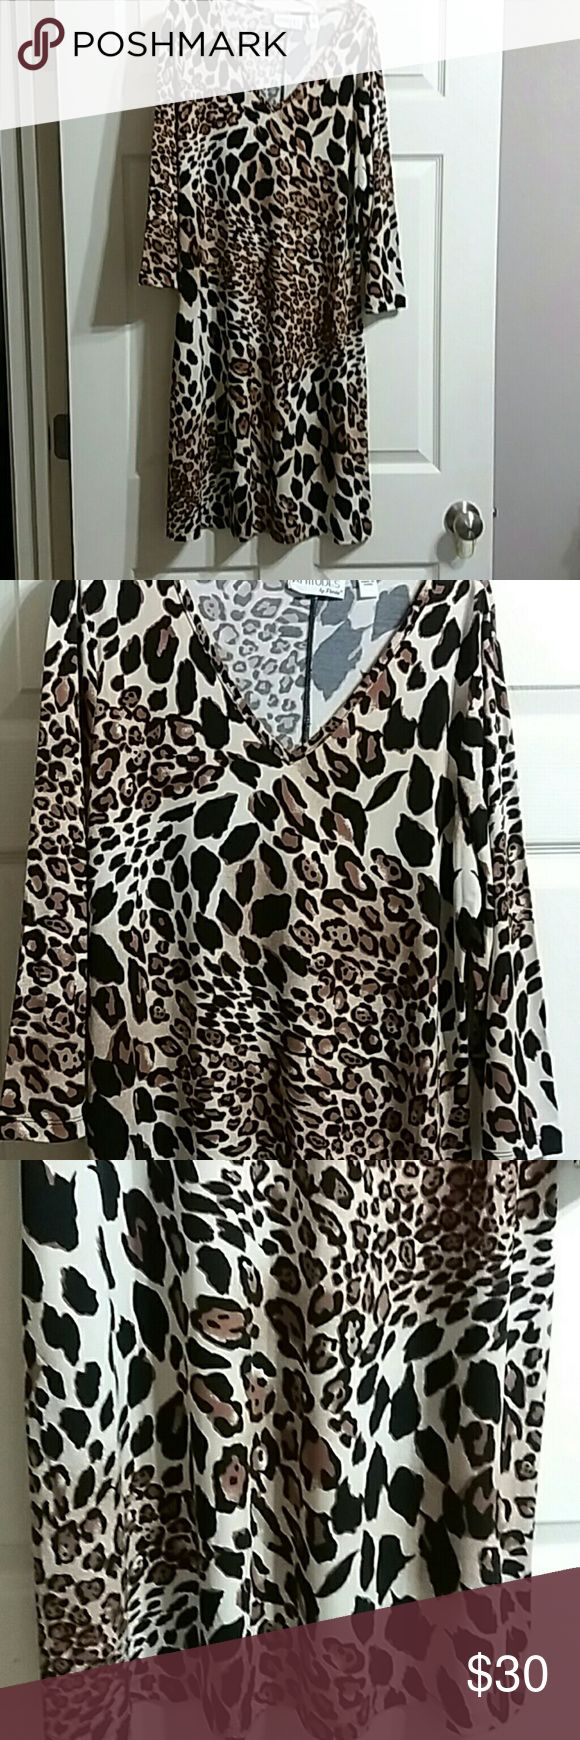 Shift dress Leopard print shift dress 3/4 sleeves. Very cute, light weight shift dress. Bundle with sandals for discount on both. Shoes $30 Dresses Mini